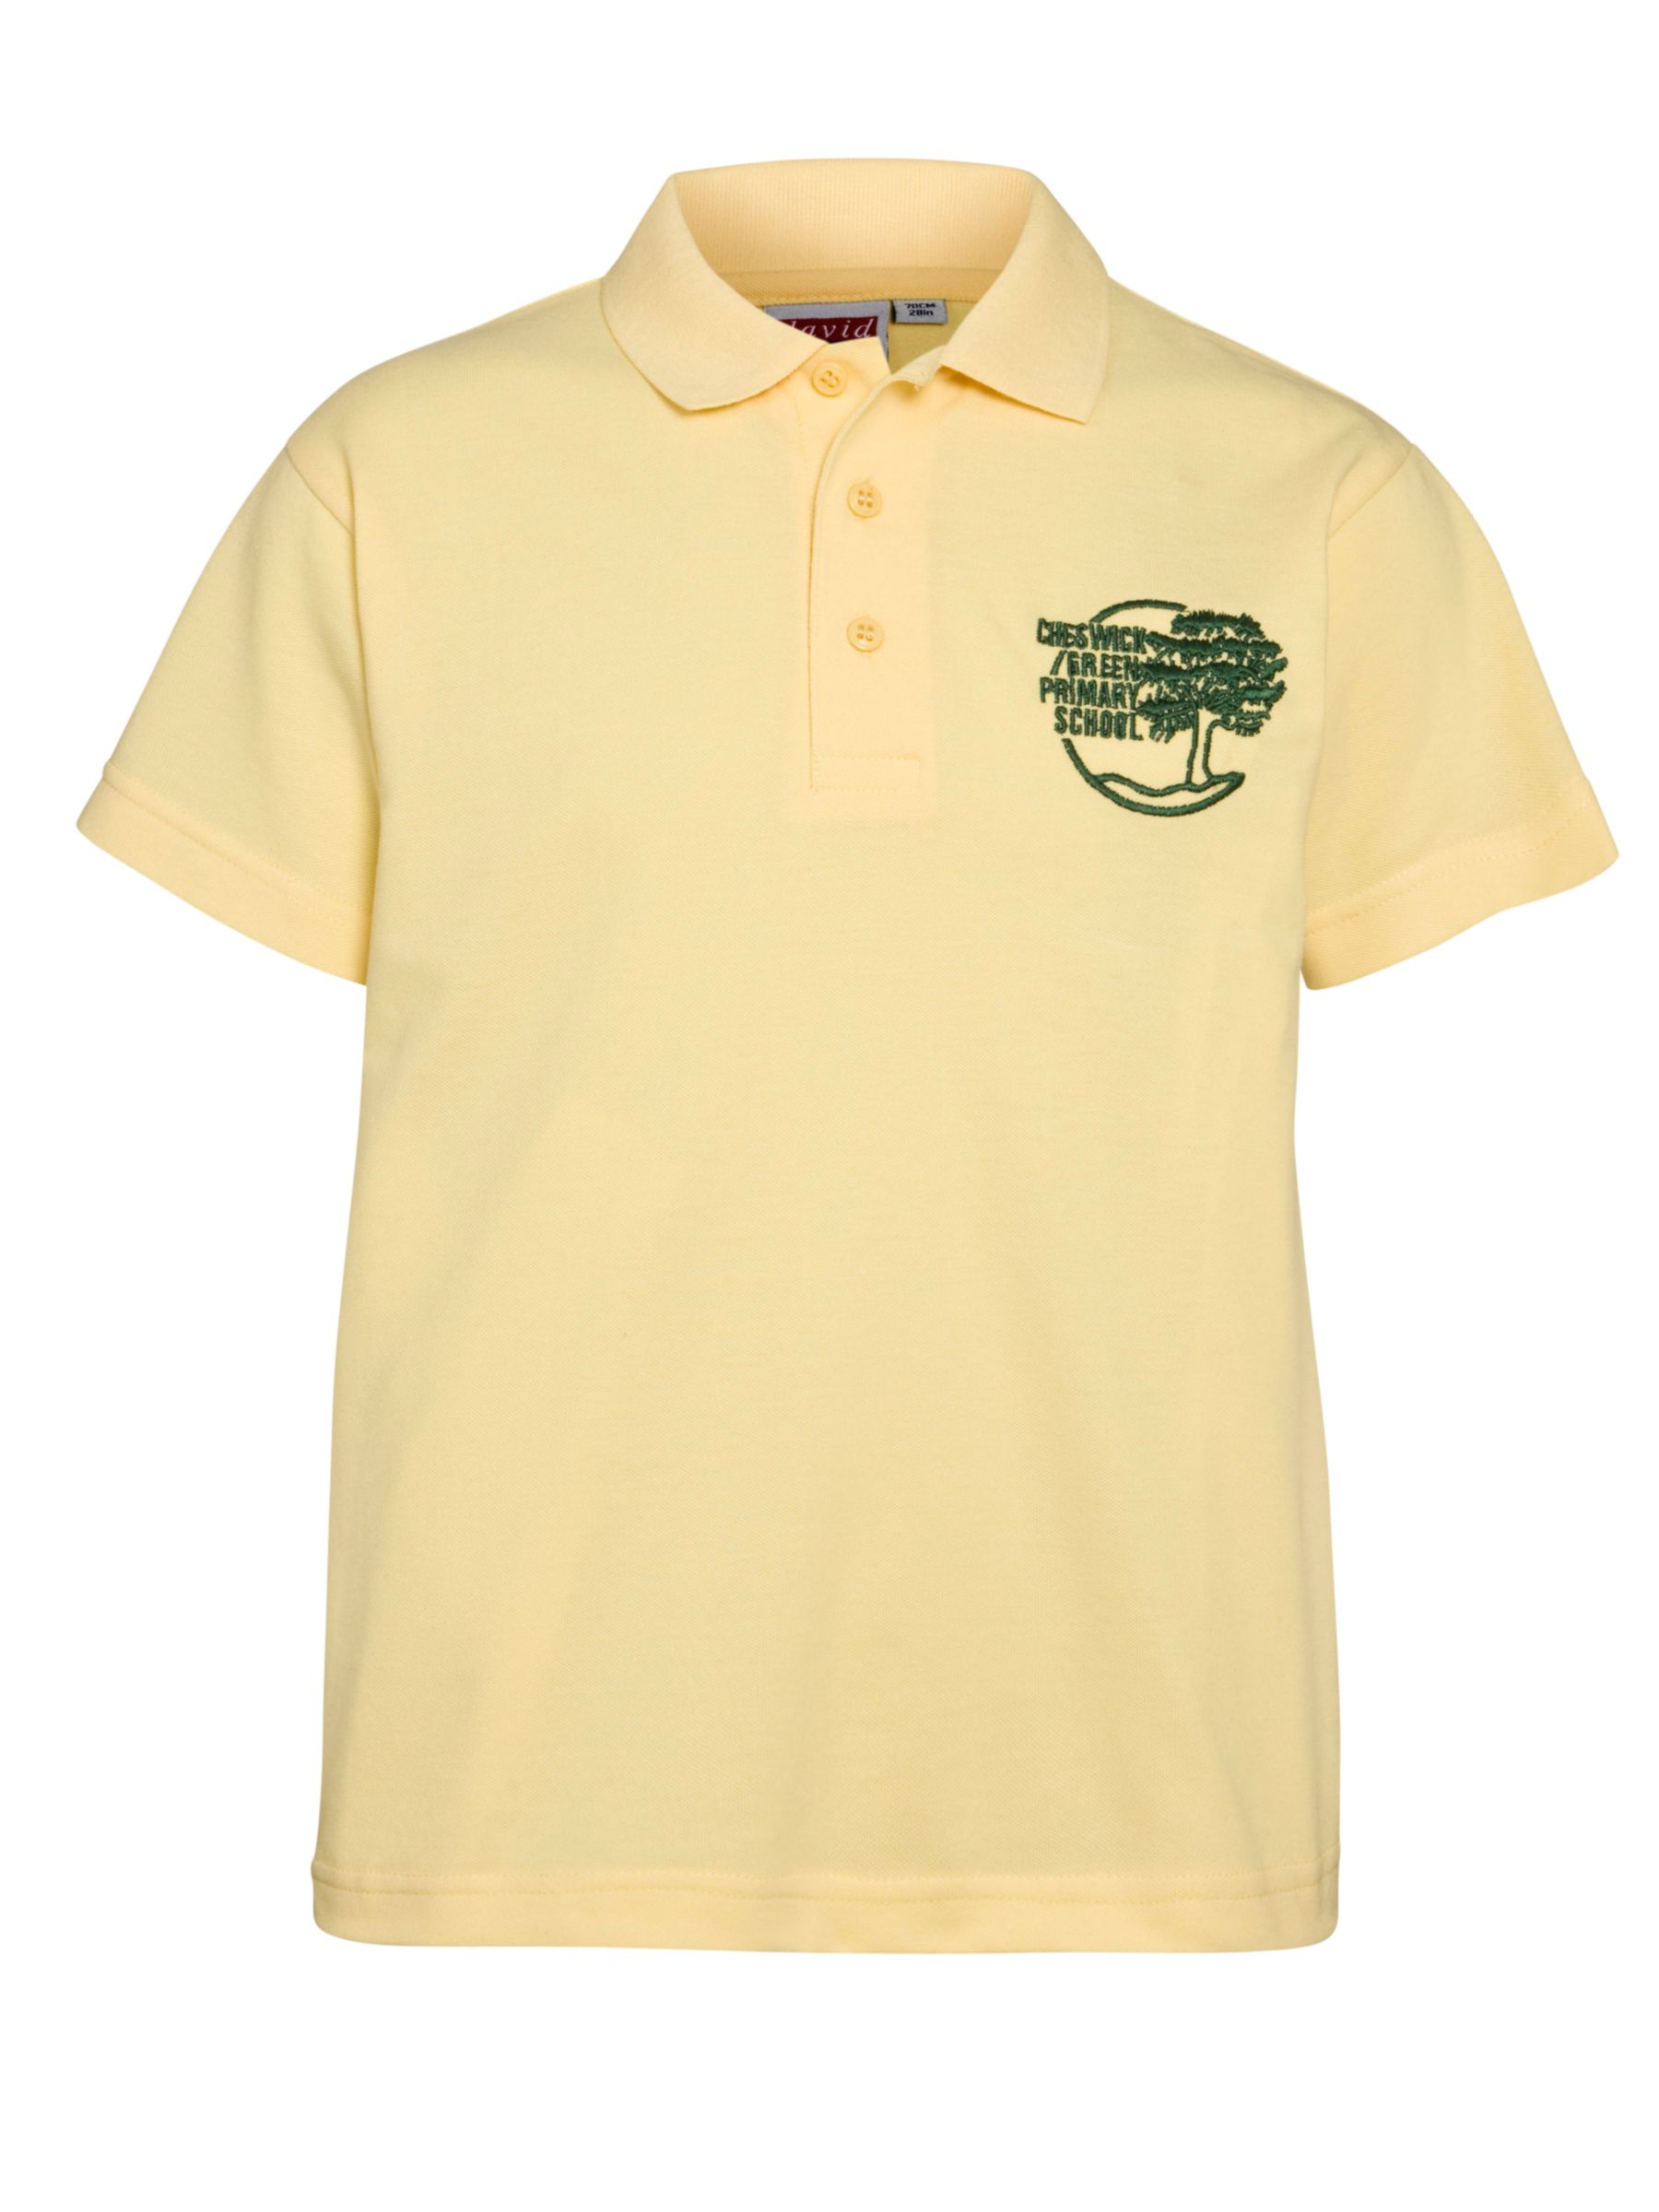 Cheswick Green Primary School Foundation Stage Unisex Polo Shirt